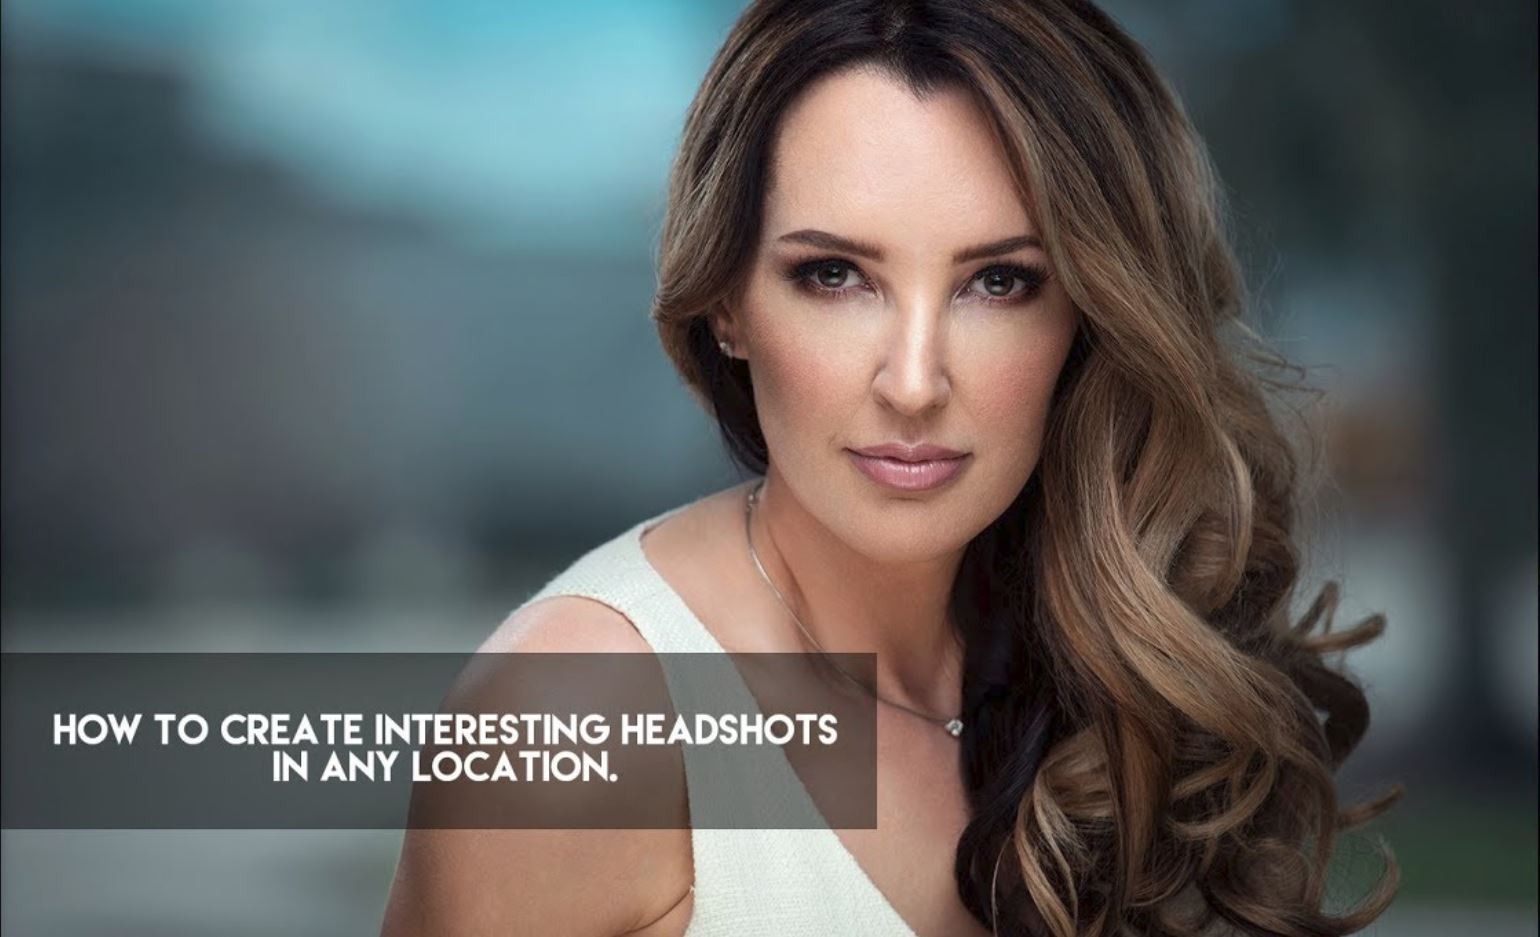 How to create interesting Corporate Headshots in any location.